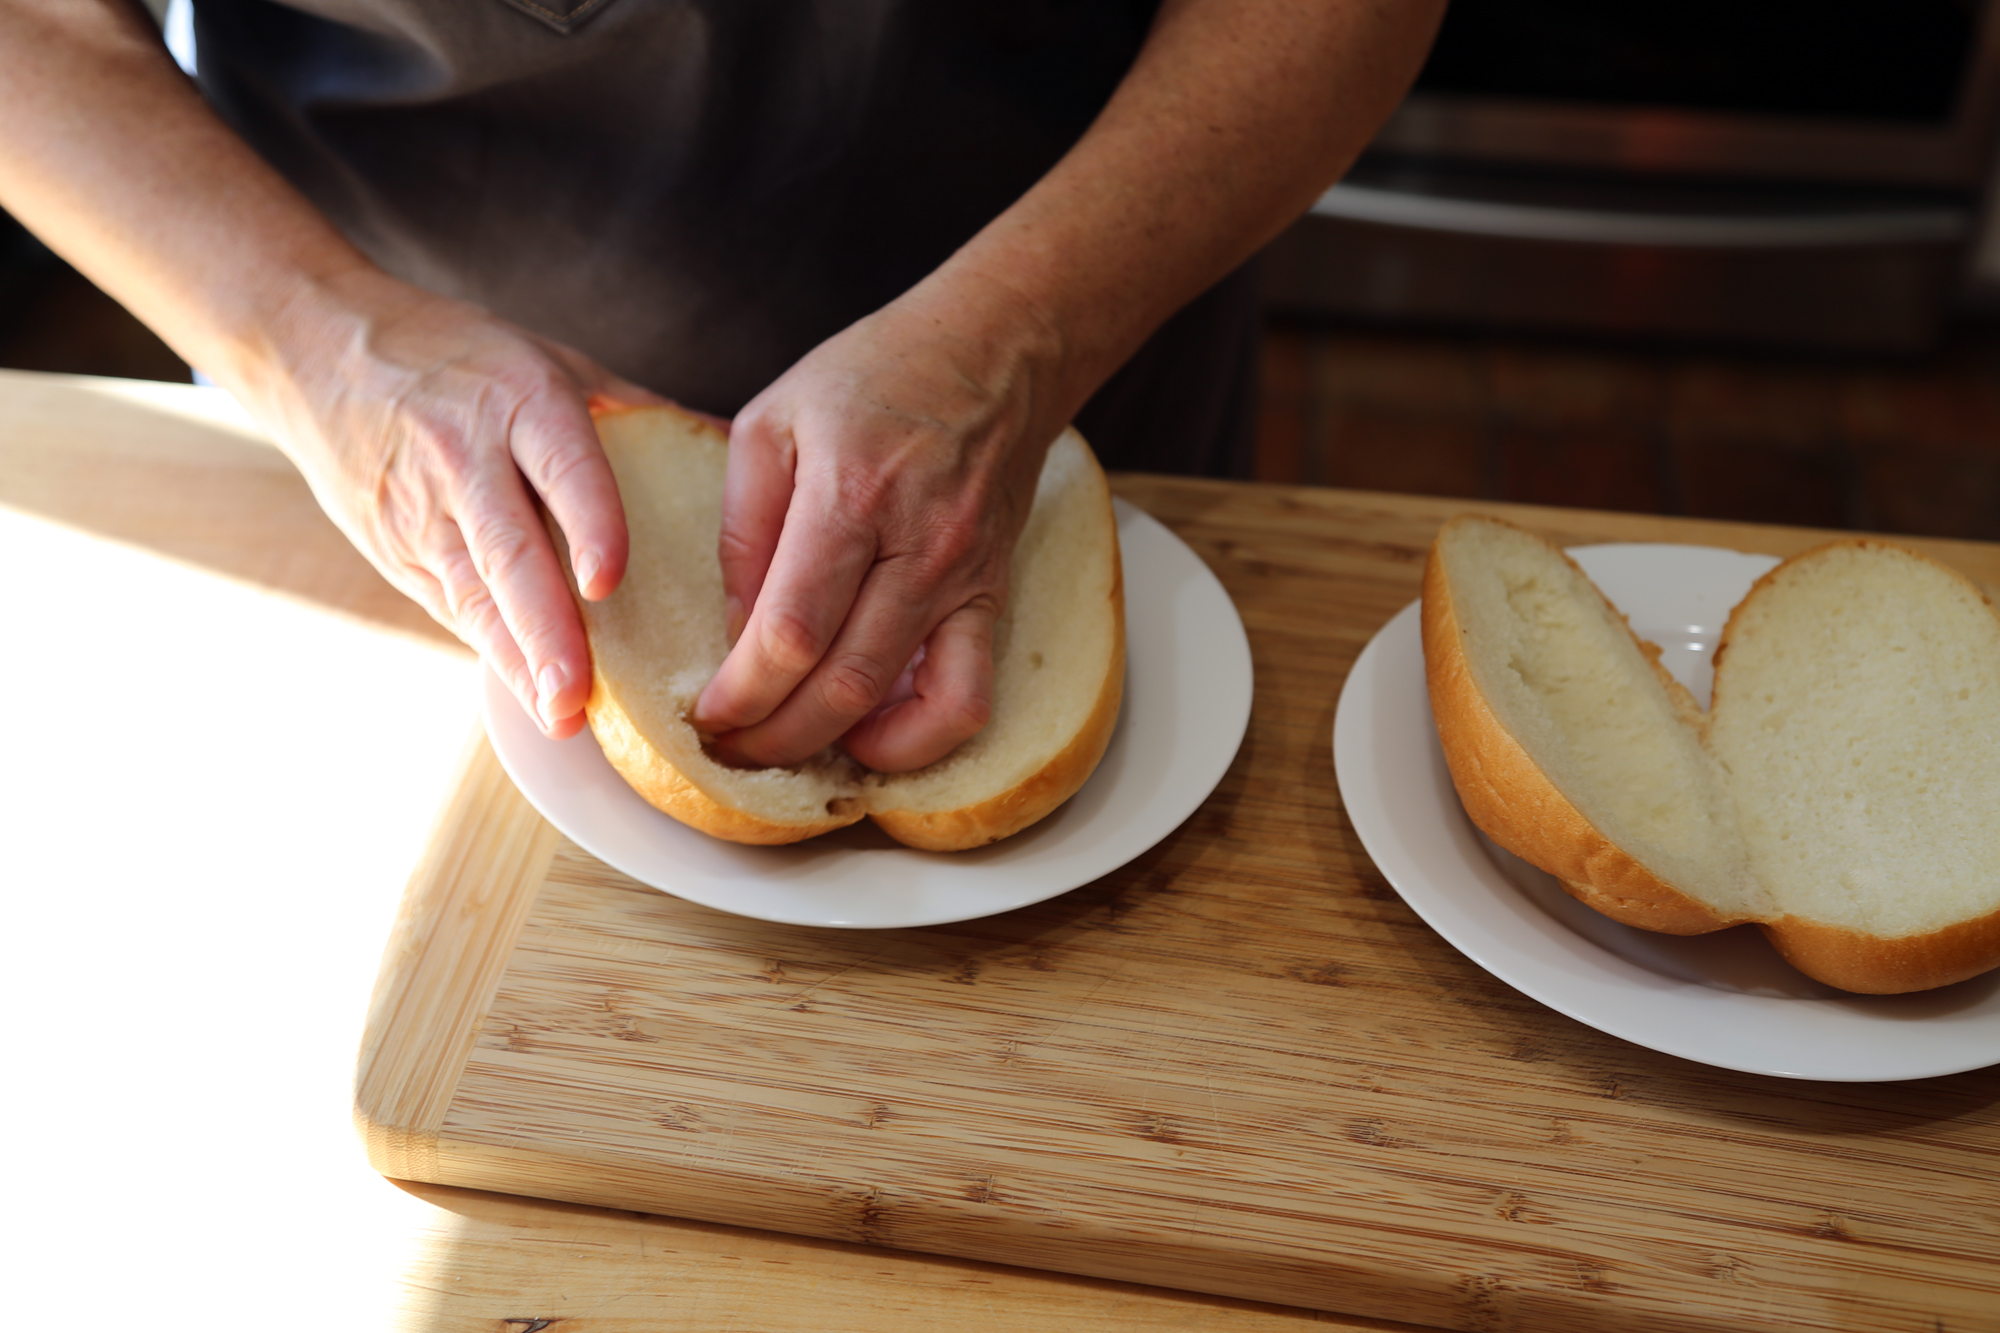 To make the sandwiches, split the rolls, and roughly hollow out the top.